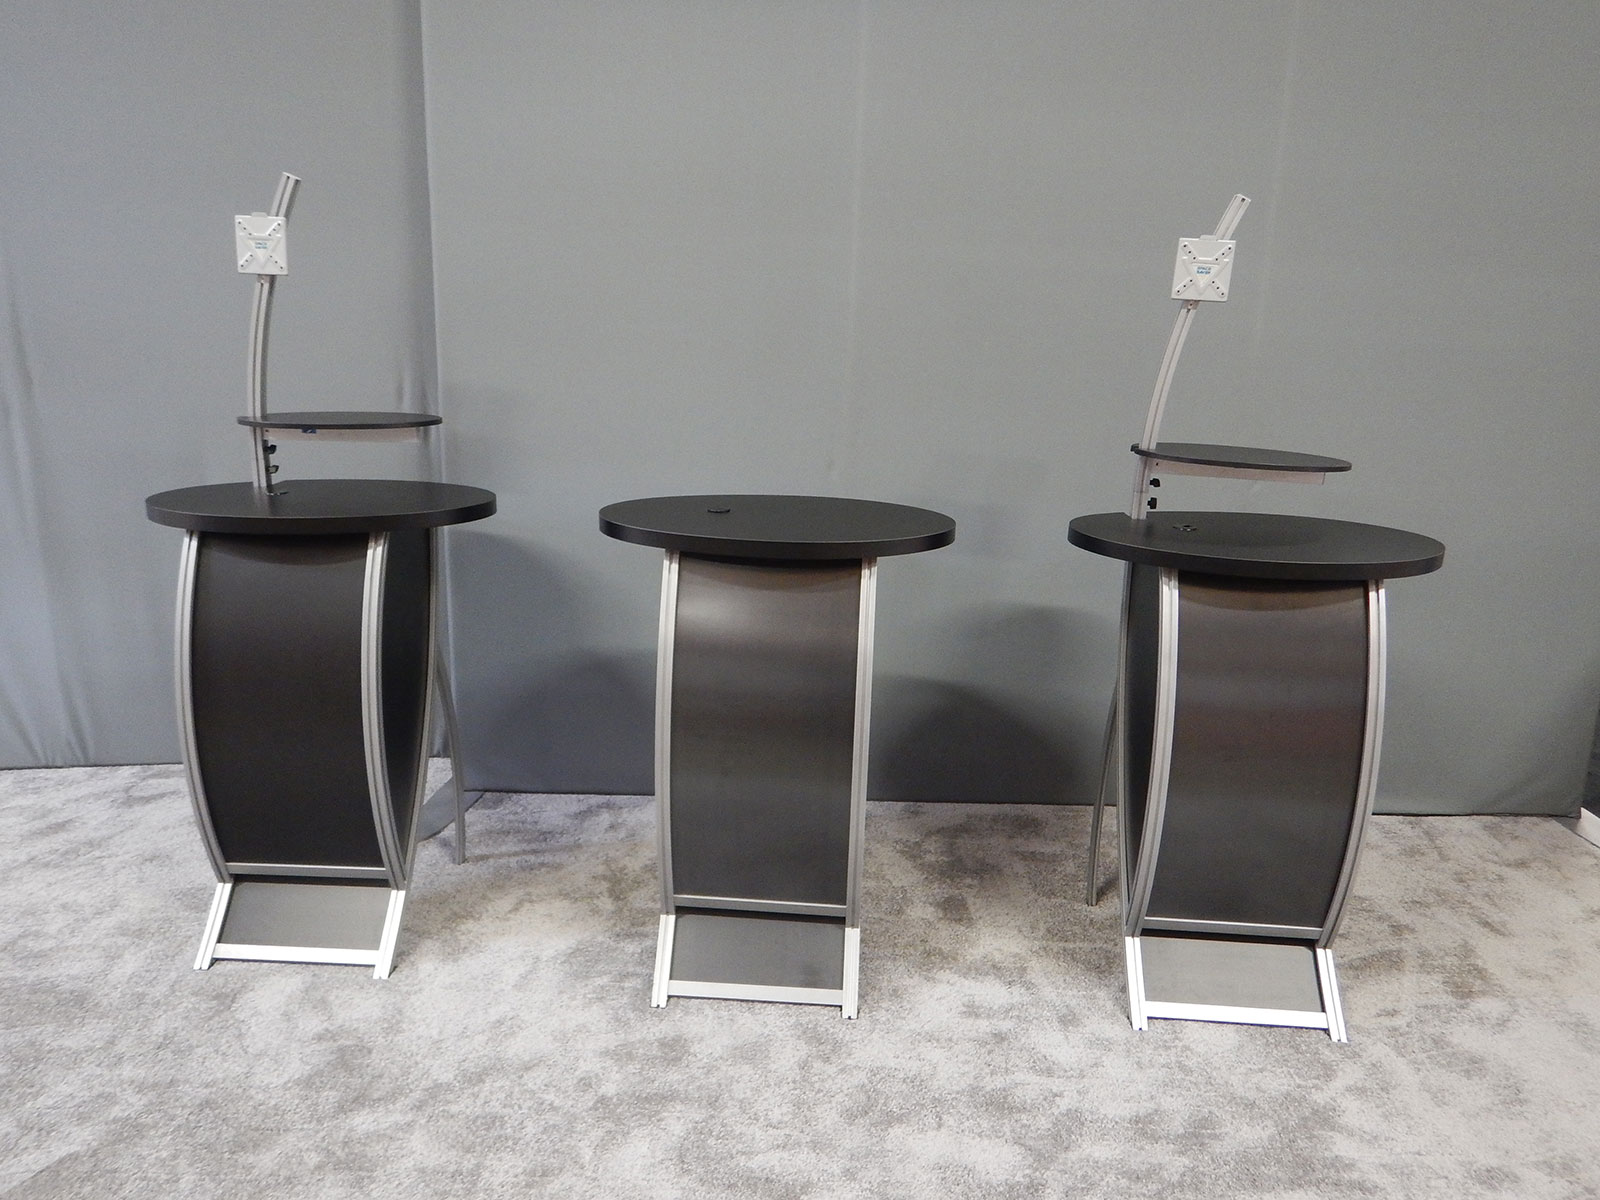 "RENTAL: (2) RE-1213 Counters with Black Oval Shelves, 30"" High Curved Extrusion Monitor Mounting Arm, Small Monitor Mount, Black Sintra Infill Panels and Black Laminated Tops, (1) RE-1213 Counter Without Monitor Arm and Mount"